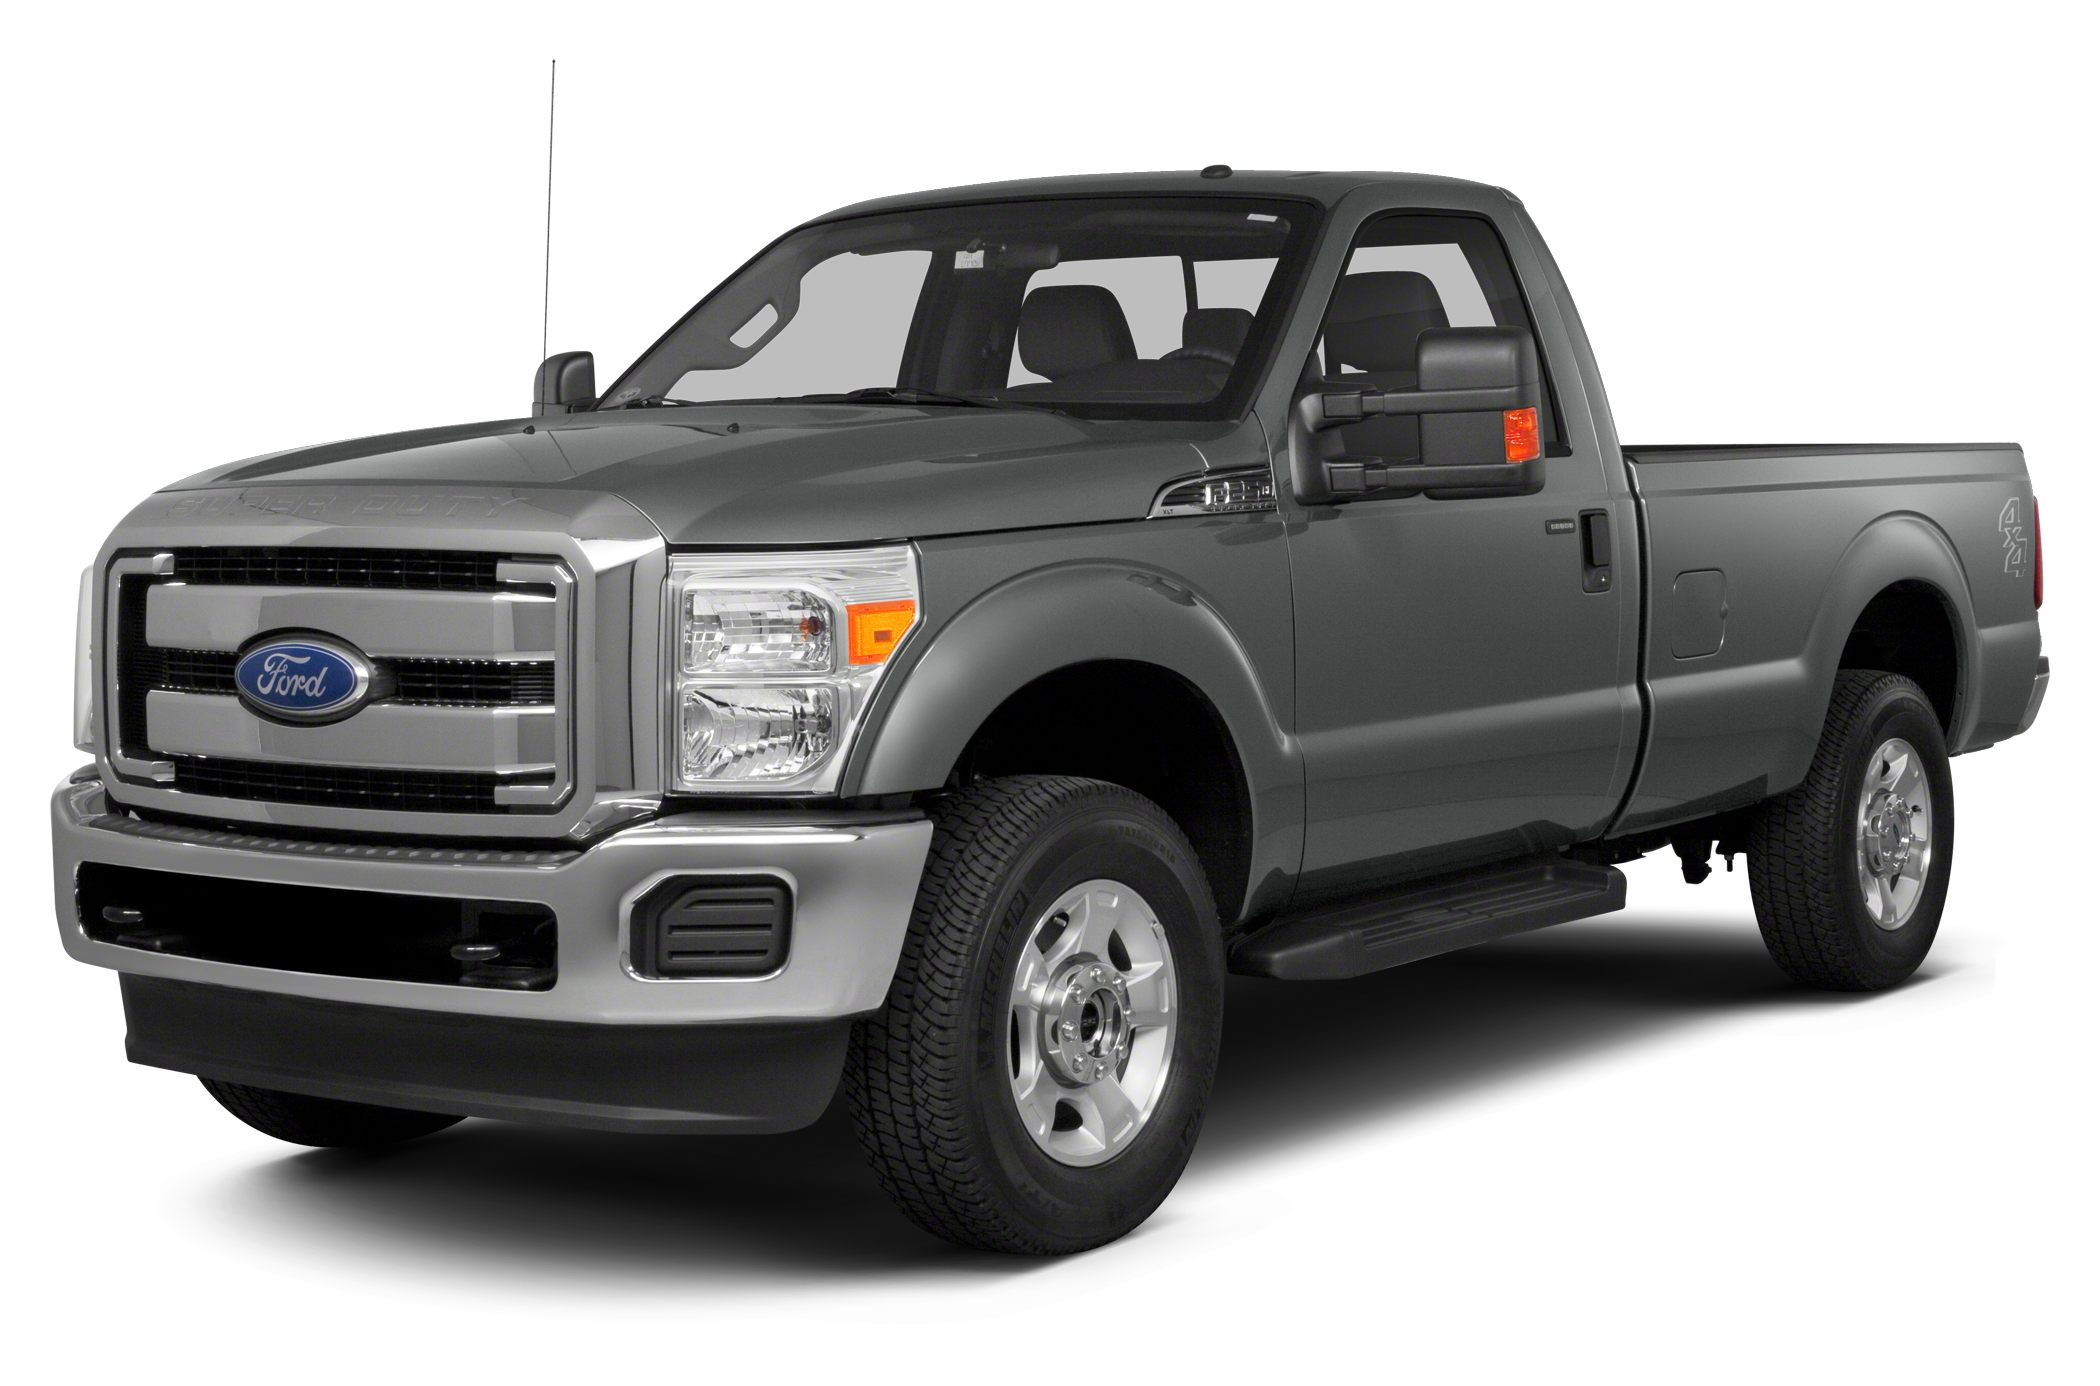 2014 Ford F250 XLT Crew Cab Pickup for sale in Monroe for $40,550 with 1 miles